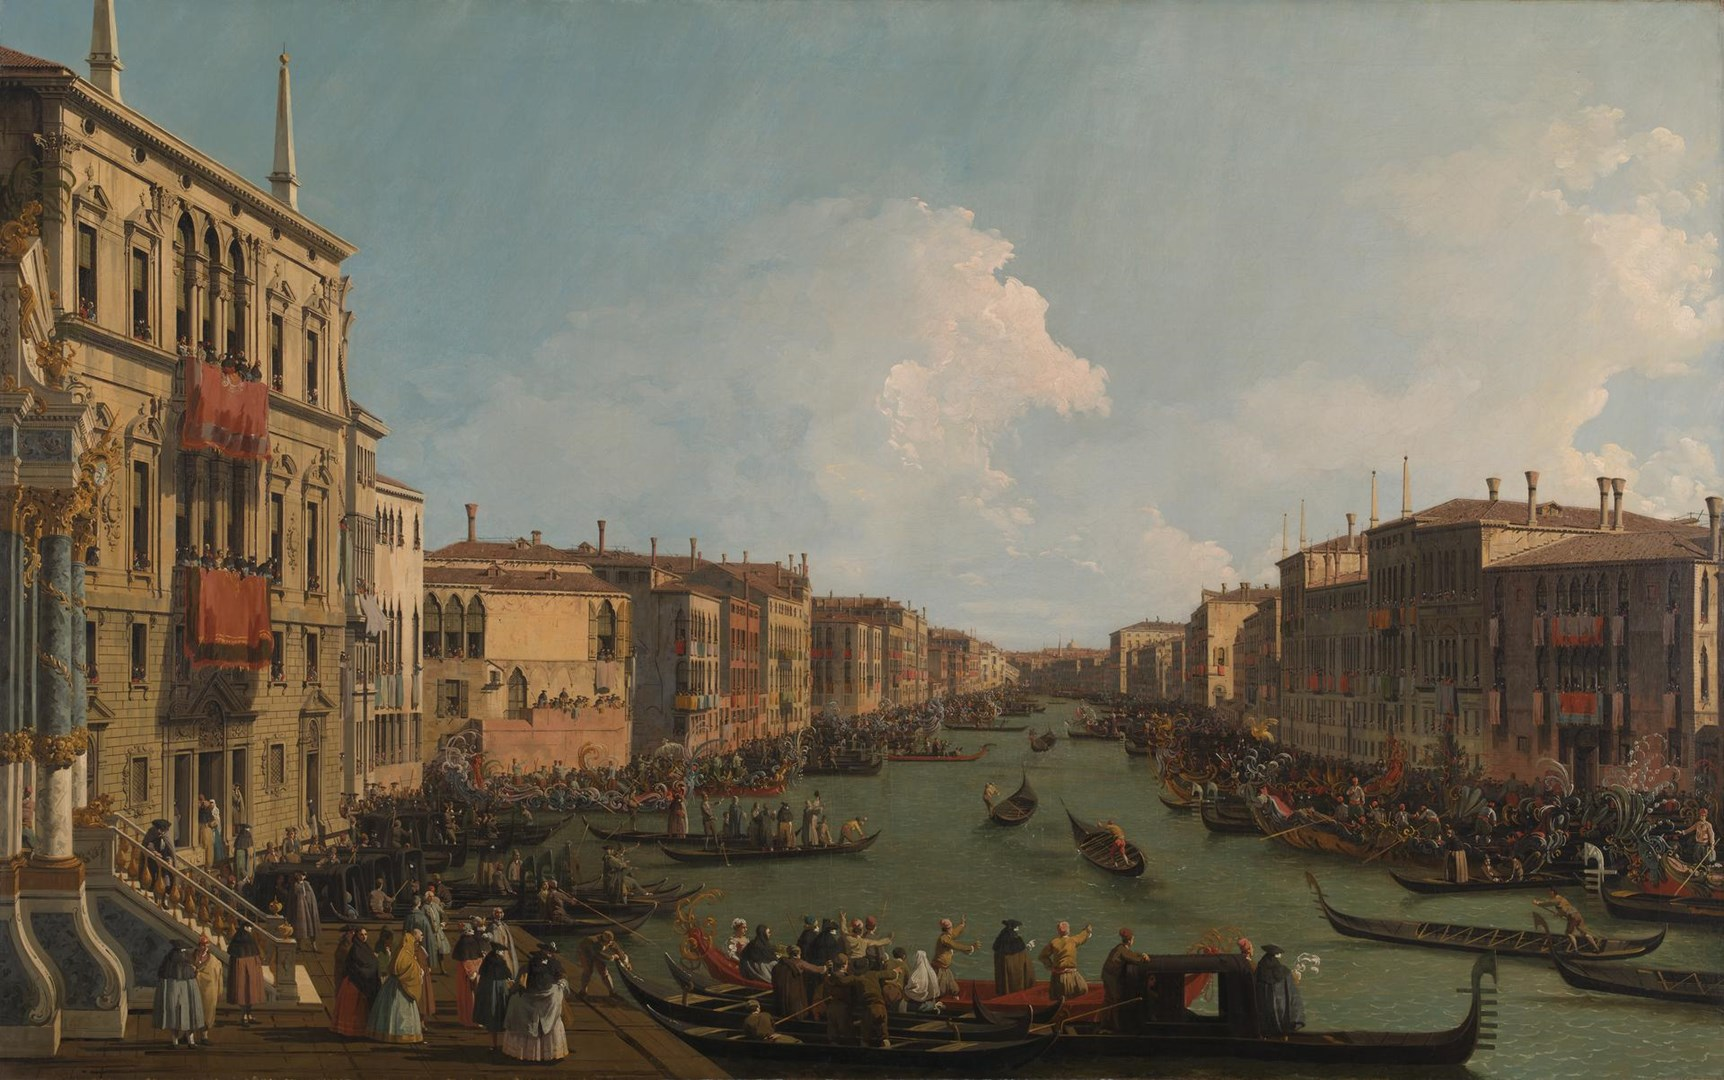 Venice: A Regatta on the Grand Canal by Canaletto